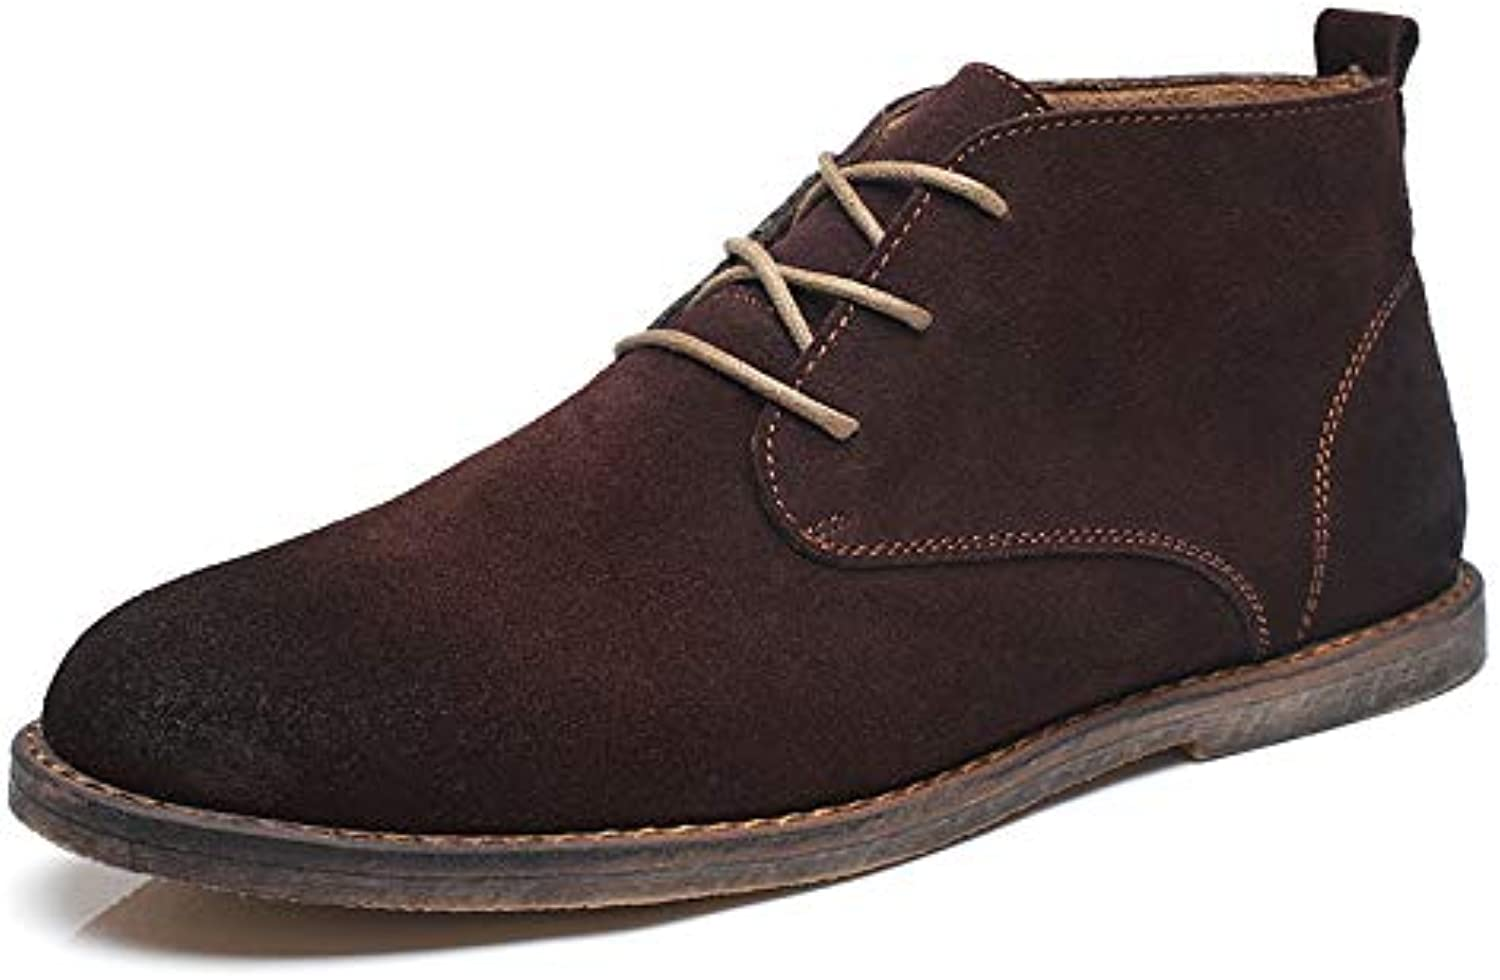 LOVDRAM Boots Men's Martin Boots Men'S shoes Casual Booties Wild Tooling Boots Scrub Cotton Desert Boots